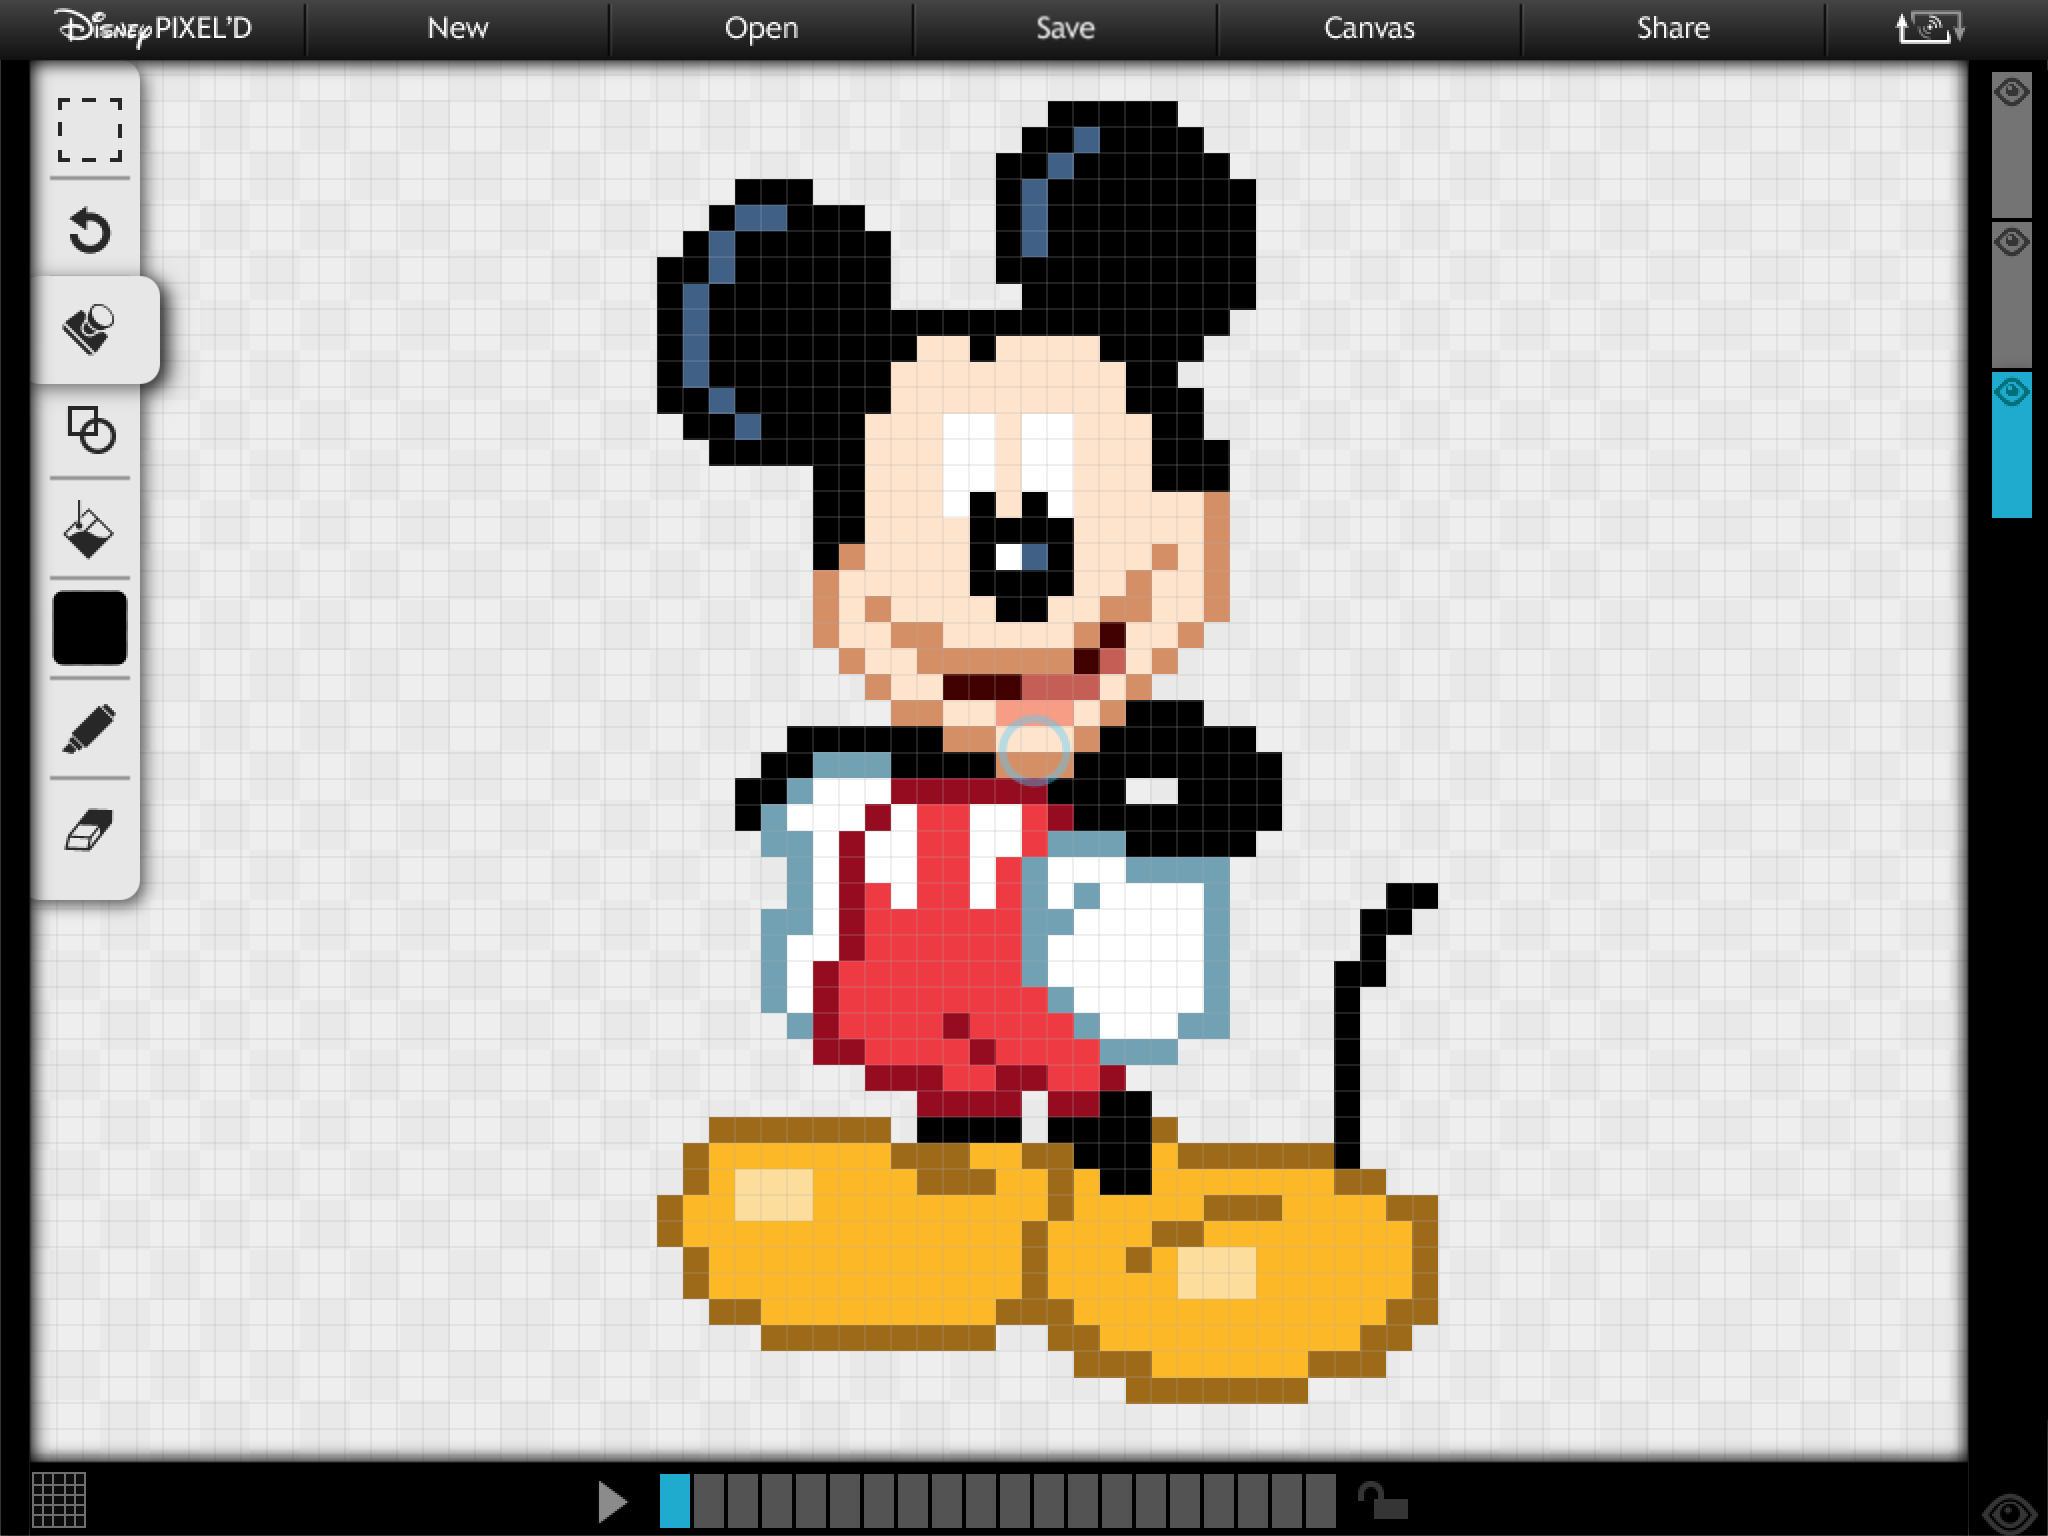 Mickey Mouse Pixel Art